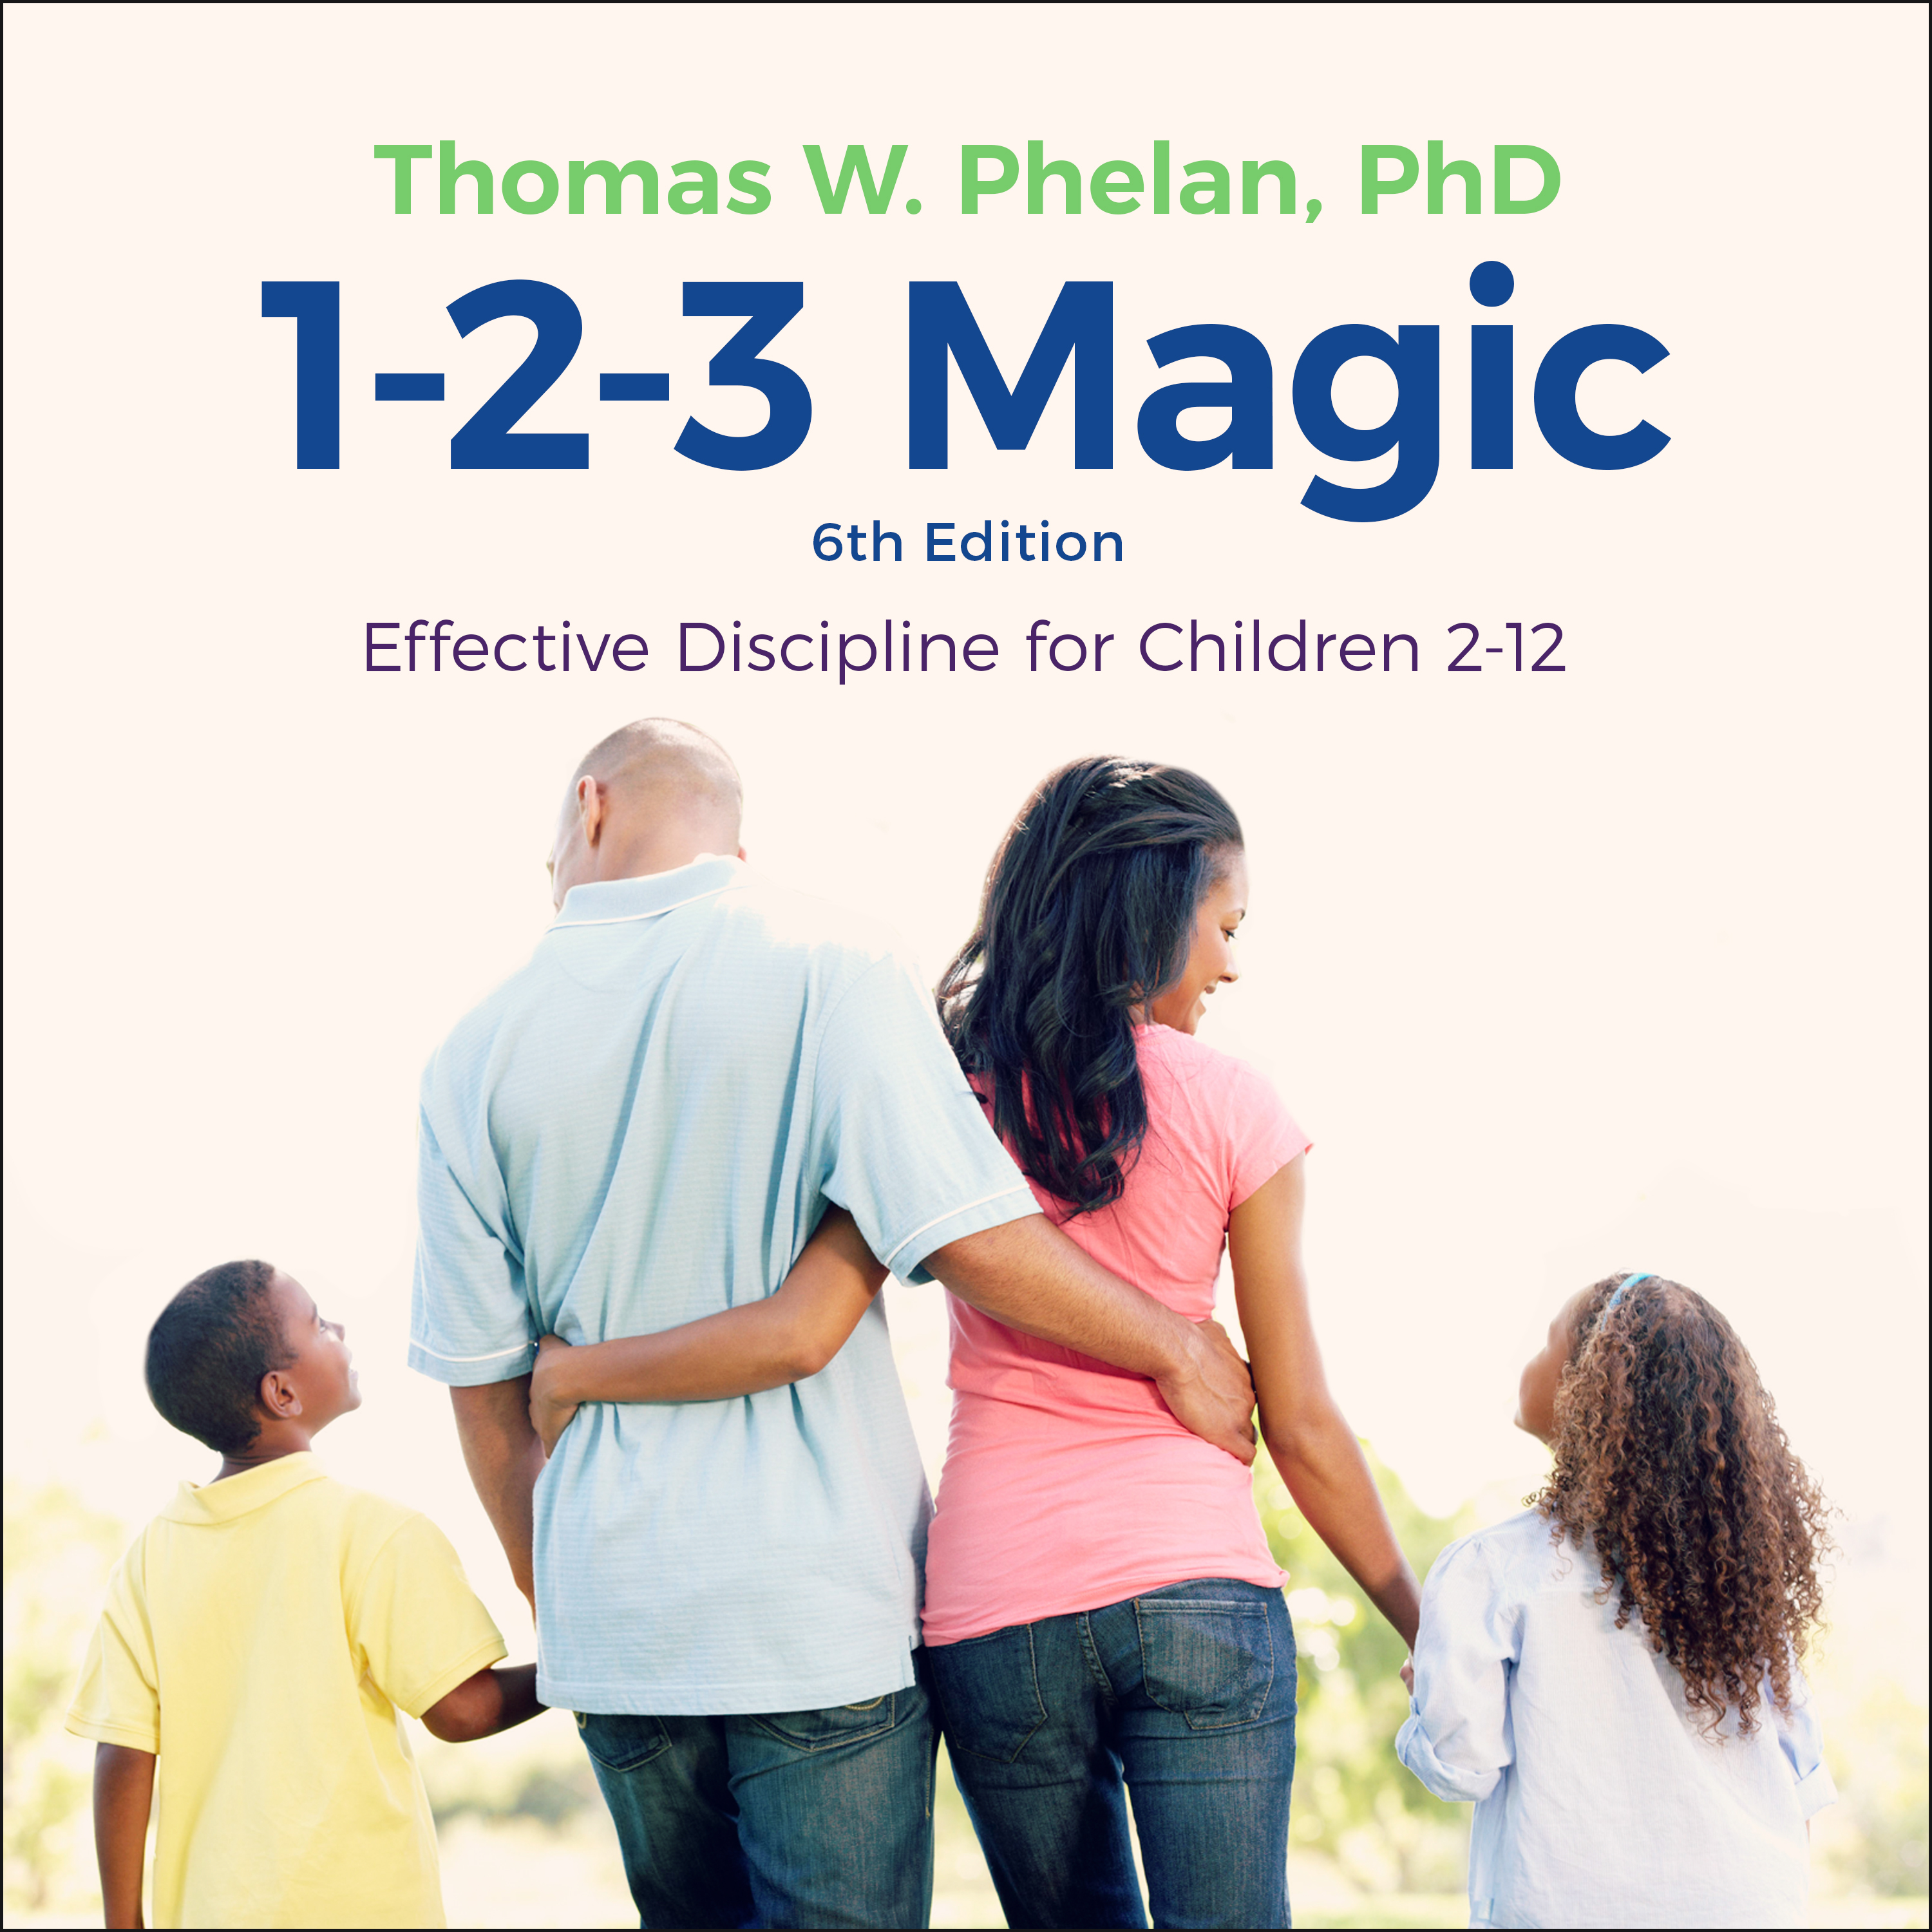 1-2-3 Magic: Effective Discipline for Children 2-12 (6th